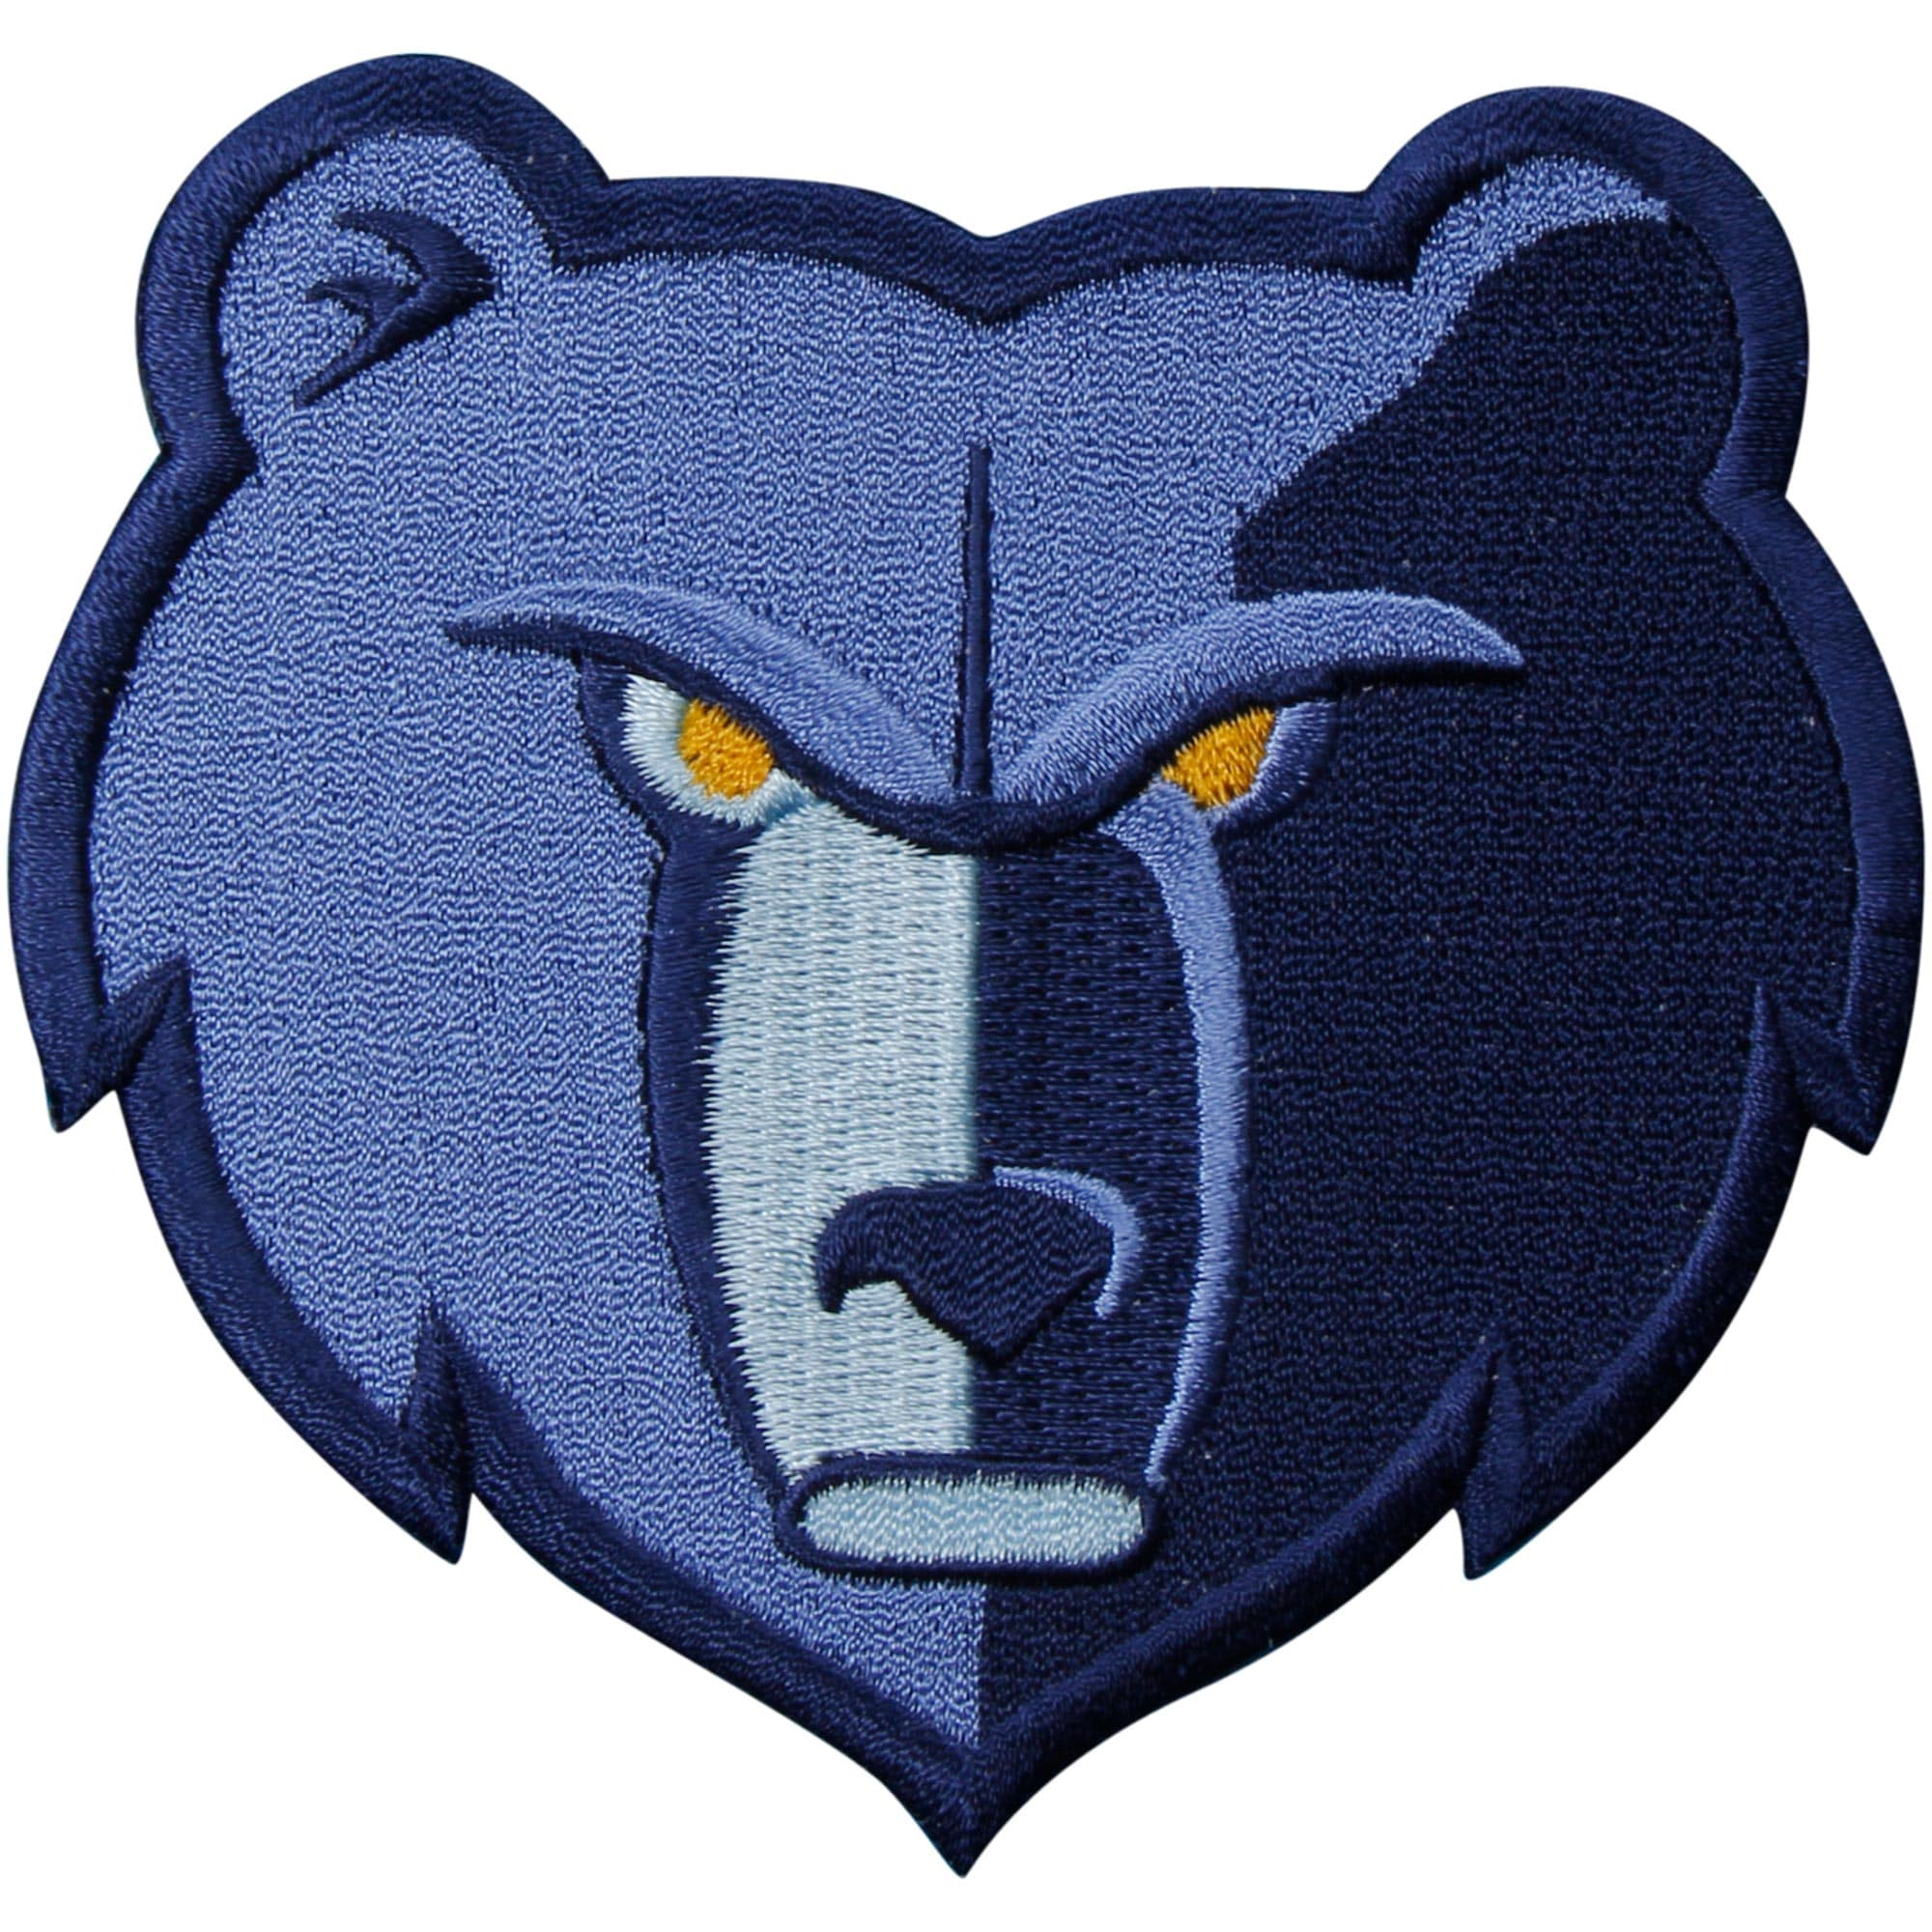 Memphis Grizzlies Embroidered Team Patch